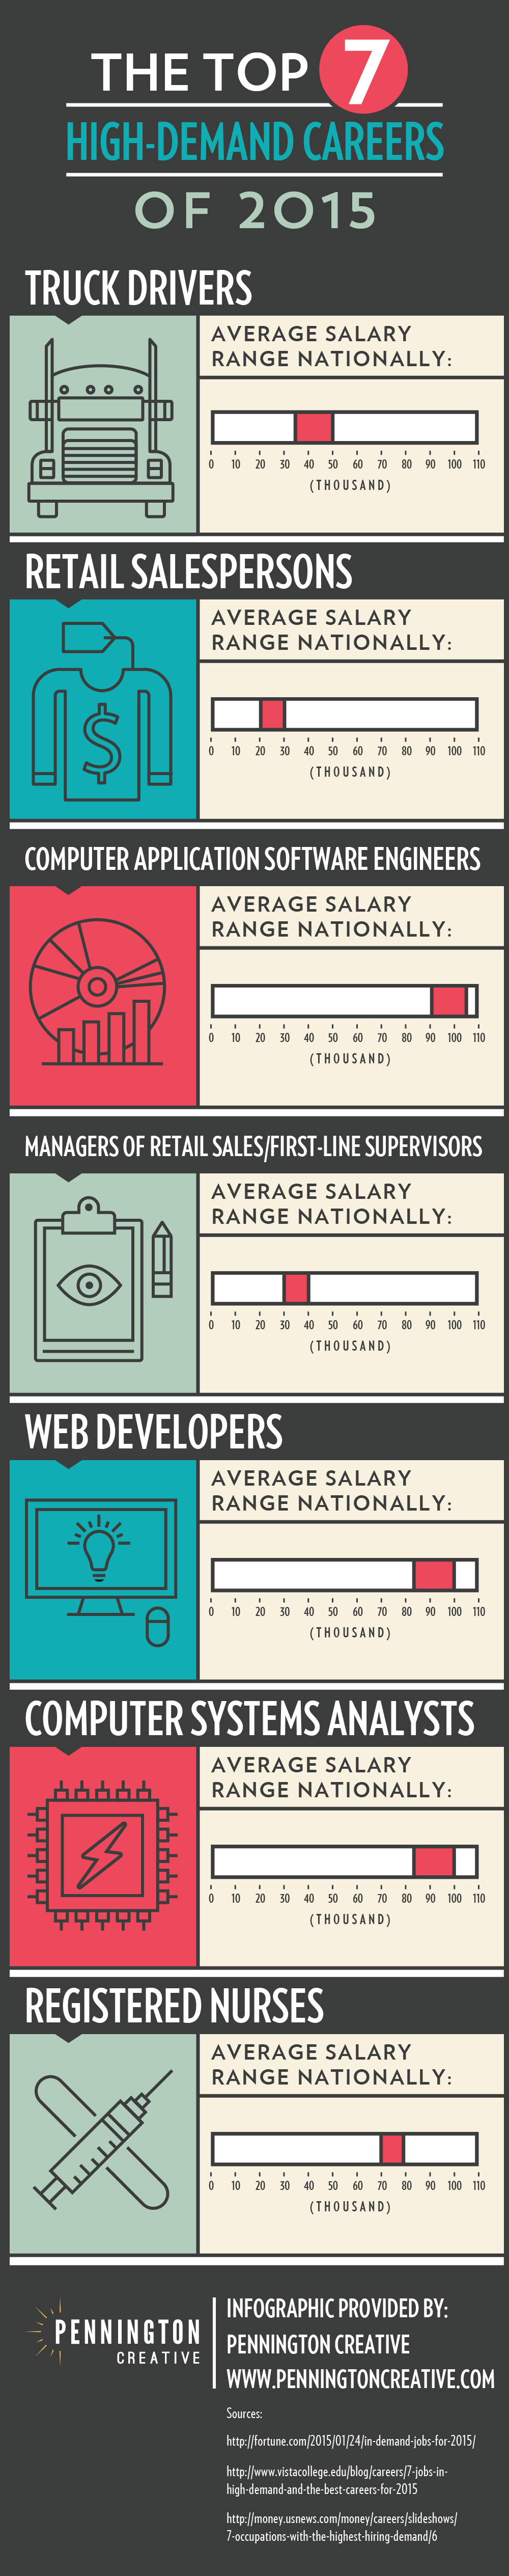 High-Demand Careers Infographic